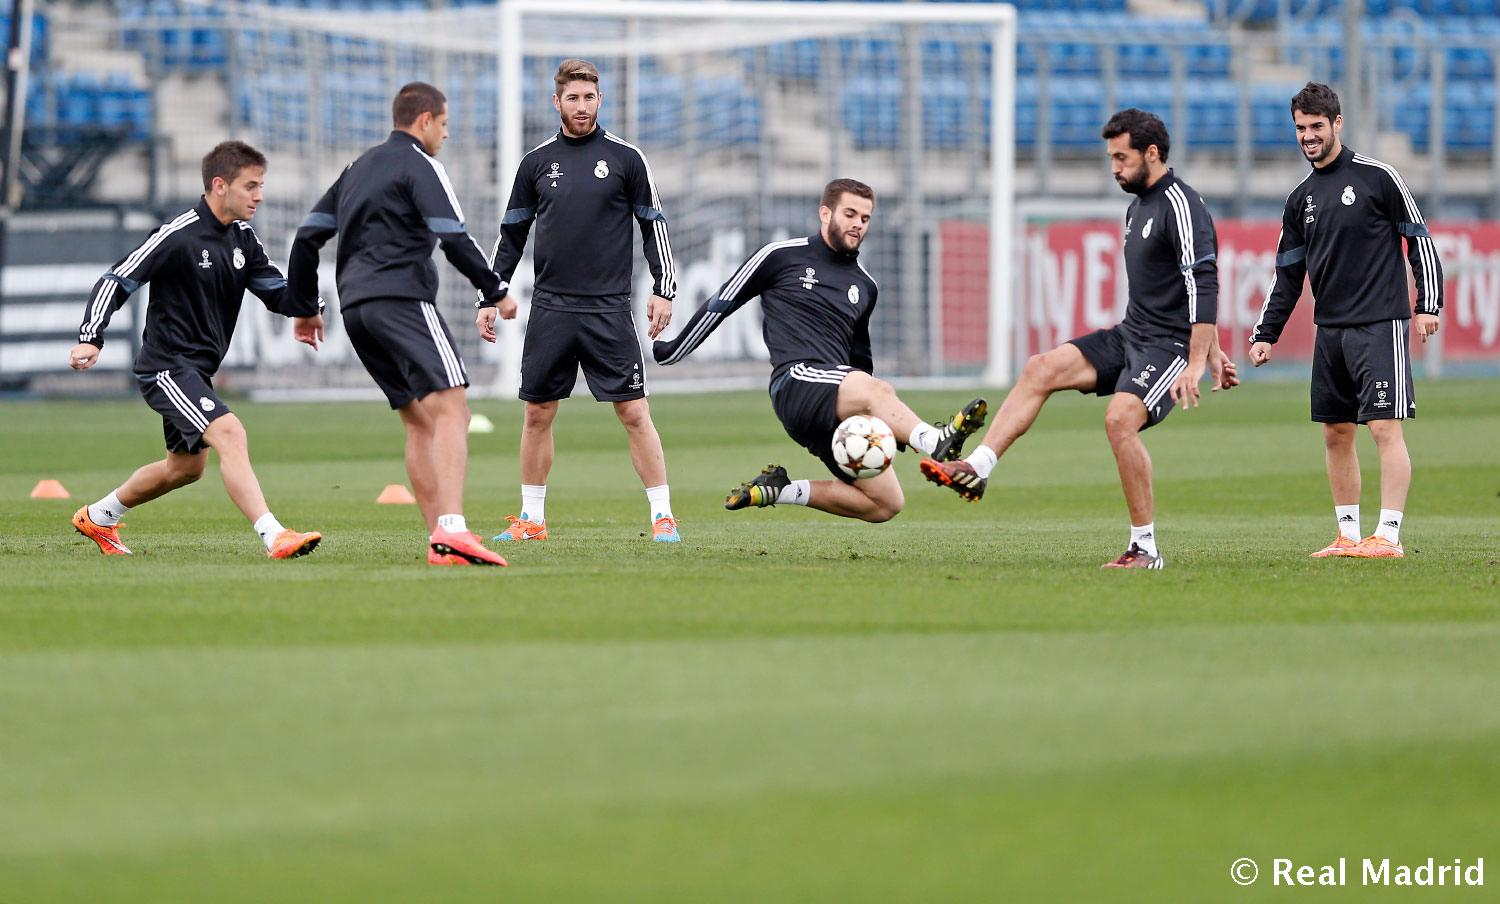 Real Madrid - Entrenamiento del Real Madrid - 03-11-2014